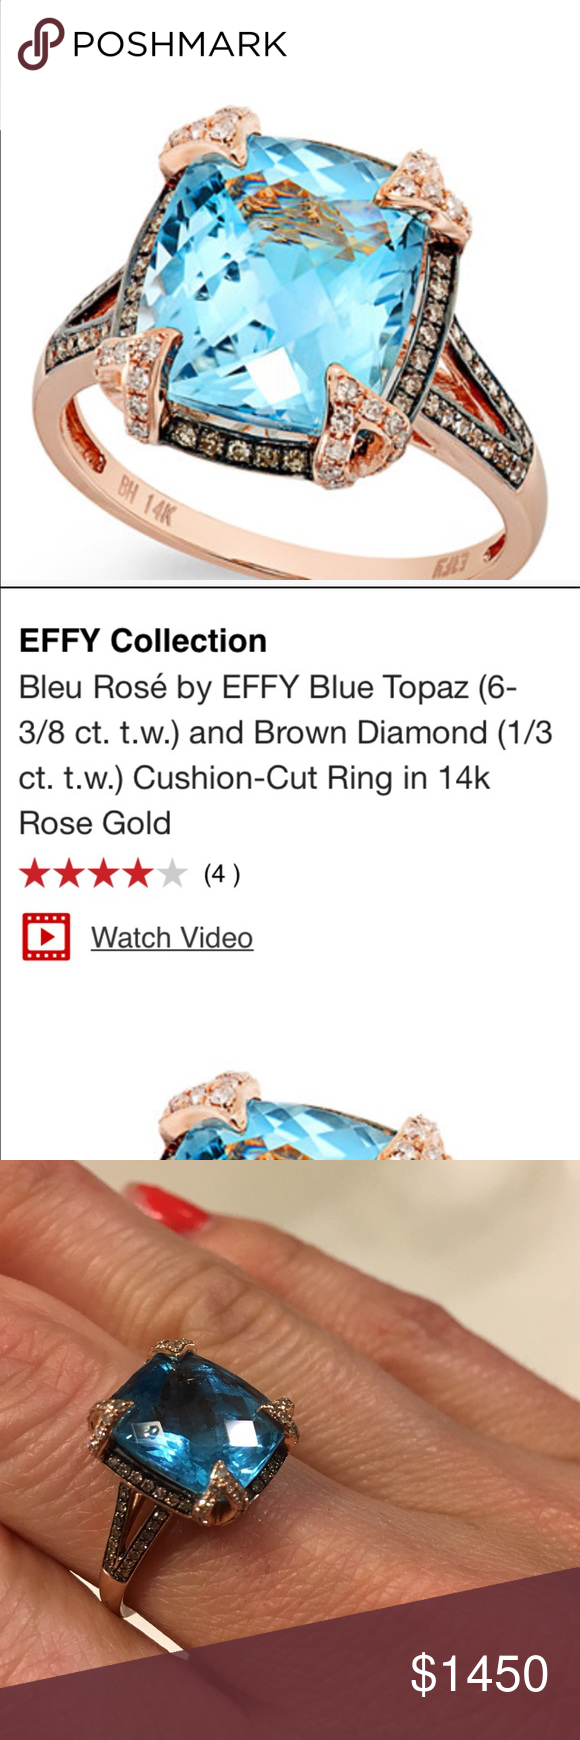 Effy collection rose gold ring gold rings ring and gold